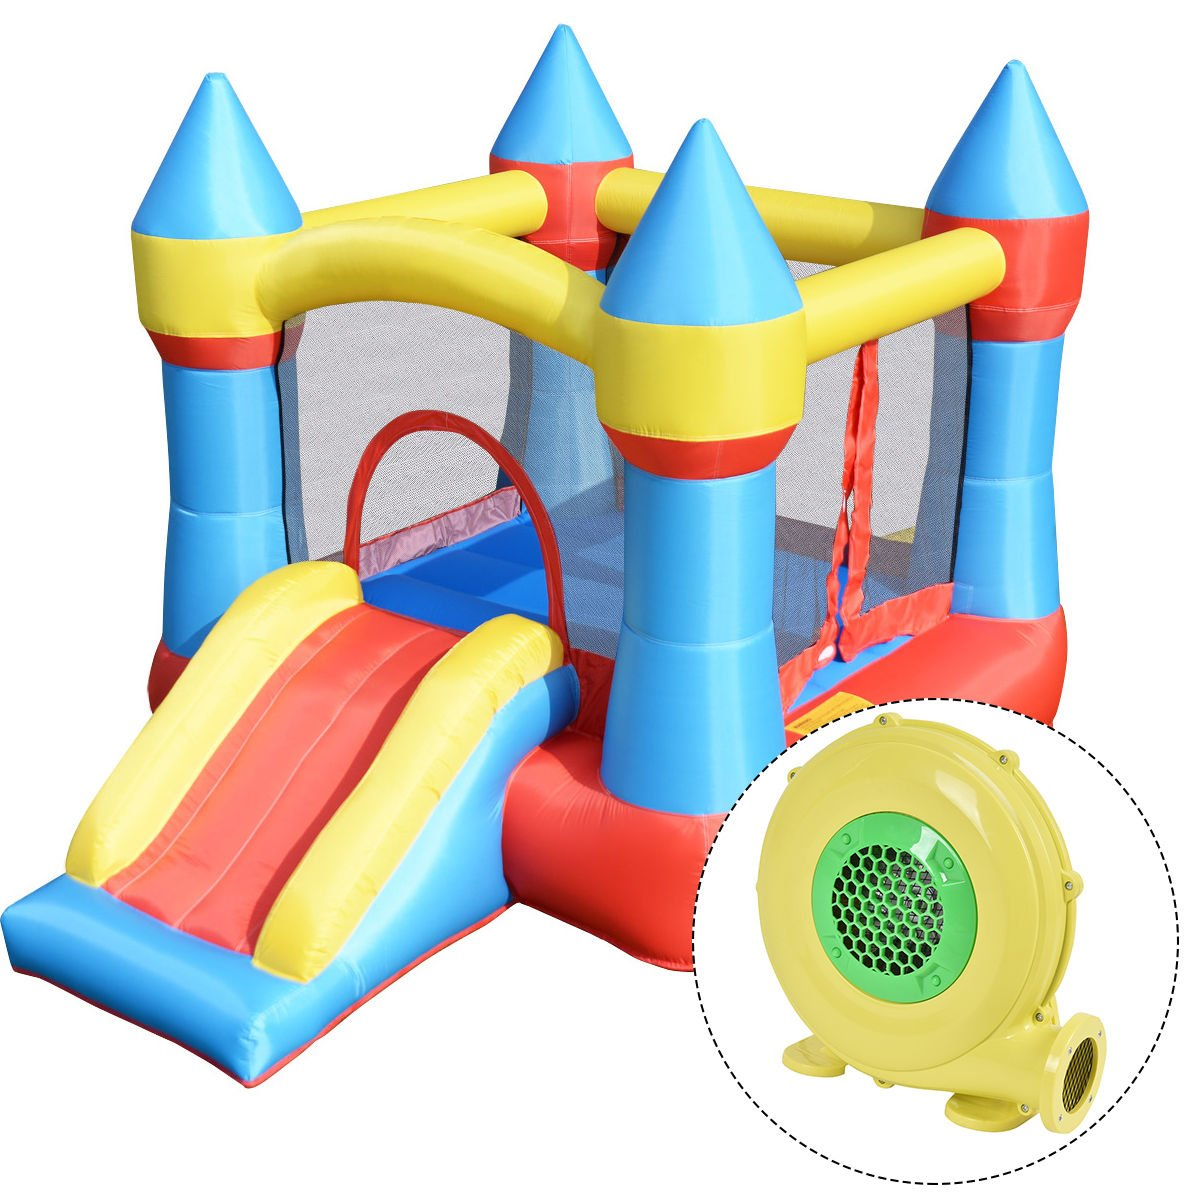 Costzon Inflatable Bouncer Moonwalk Slide Bounce House Jumper Kids Play Center with 480W Blower